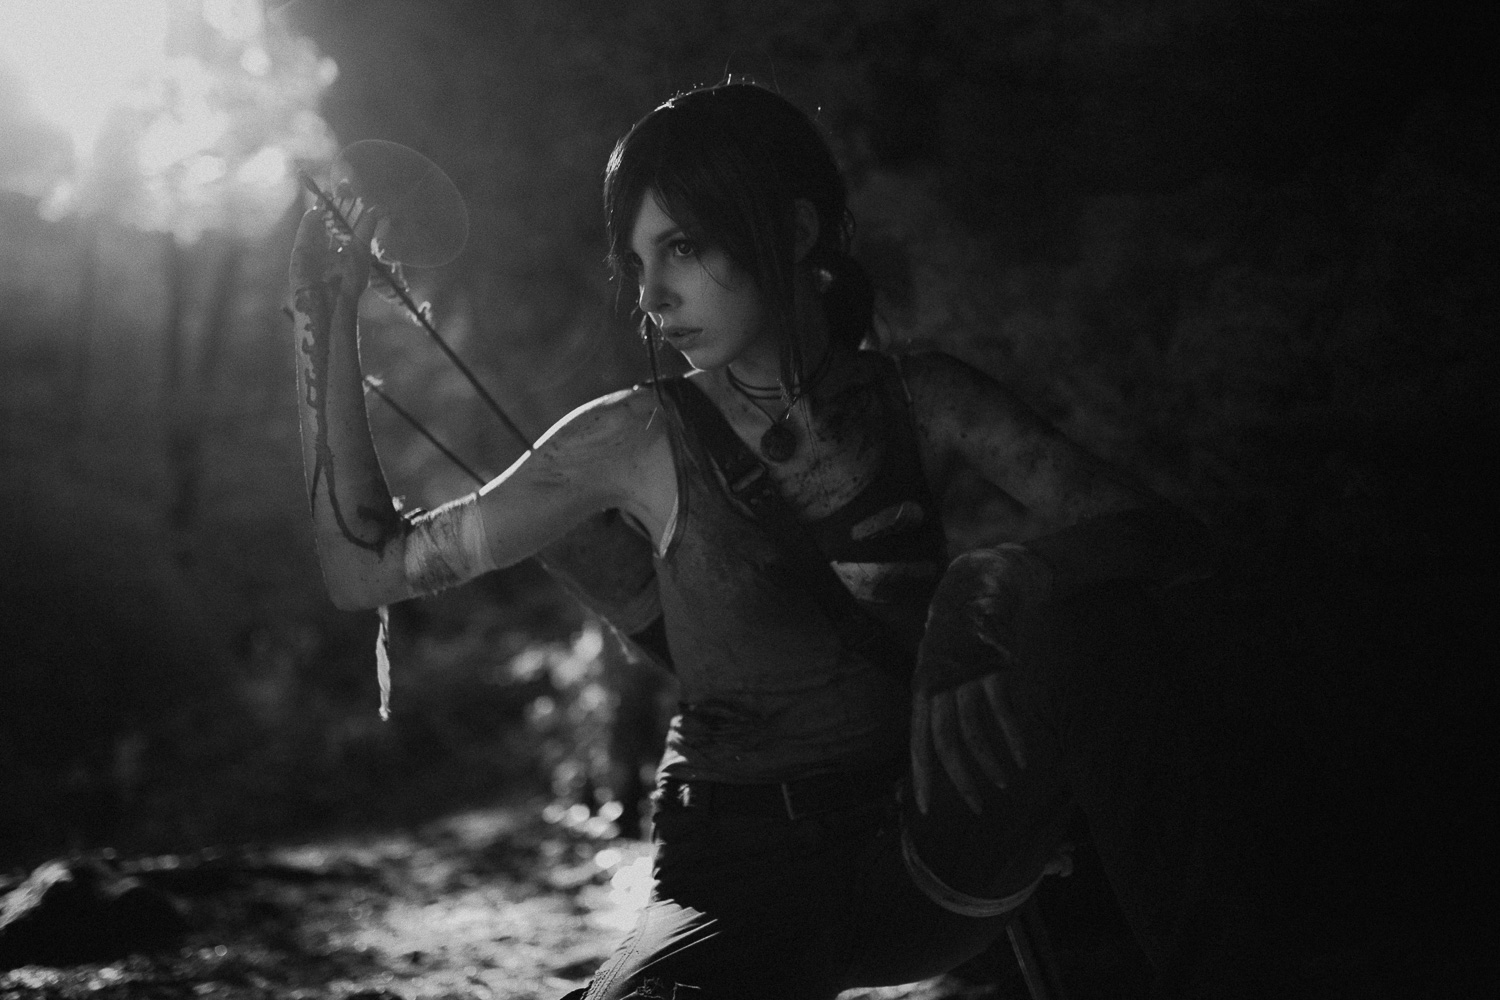 Tomb-Raider-Lara-Croft-Cosplay-4.jpg